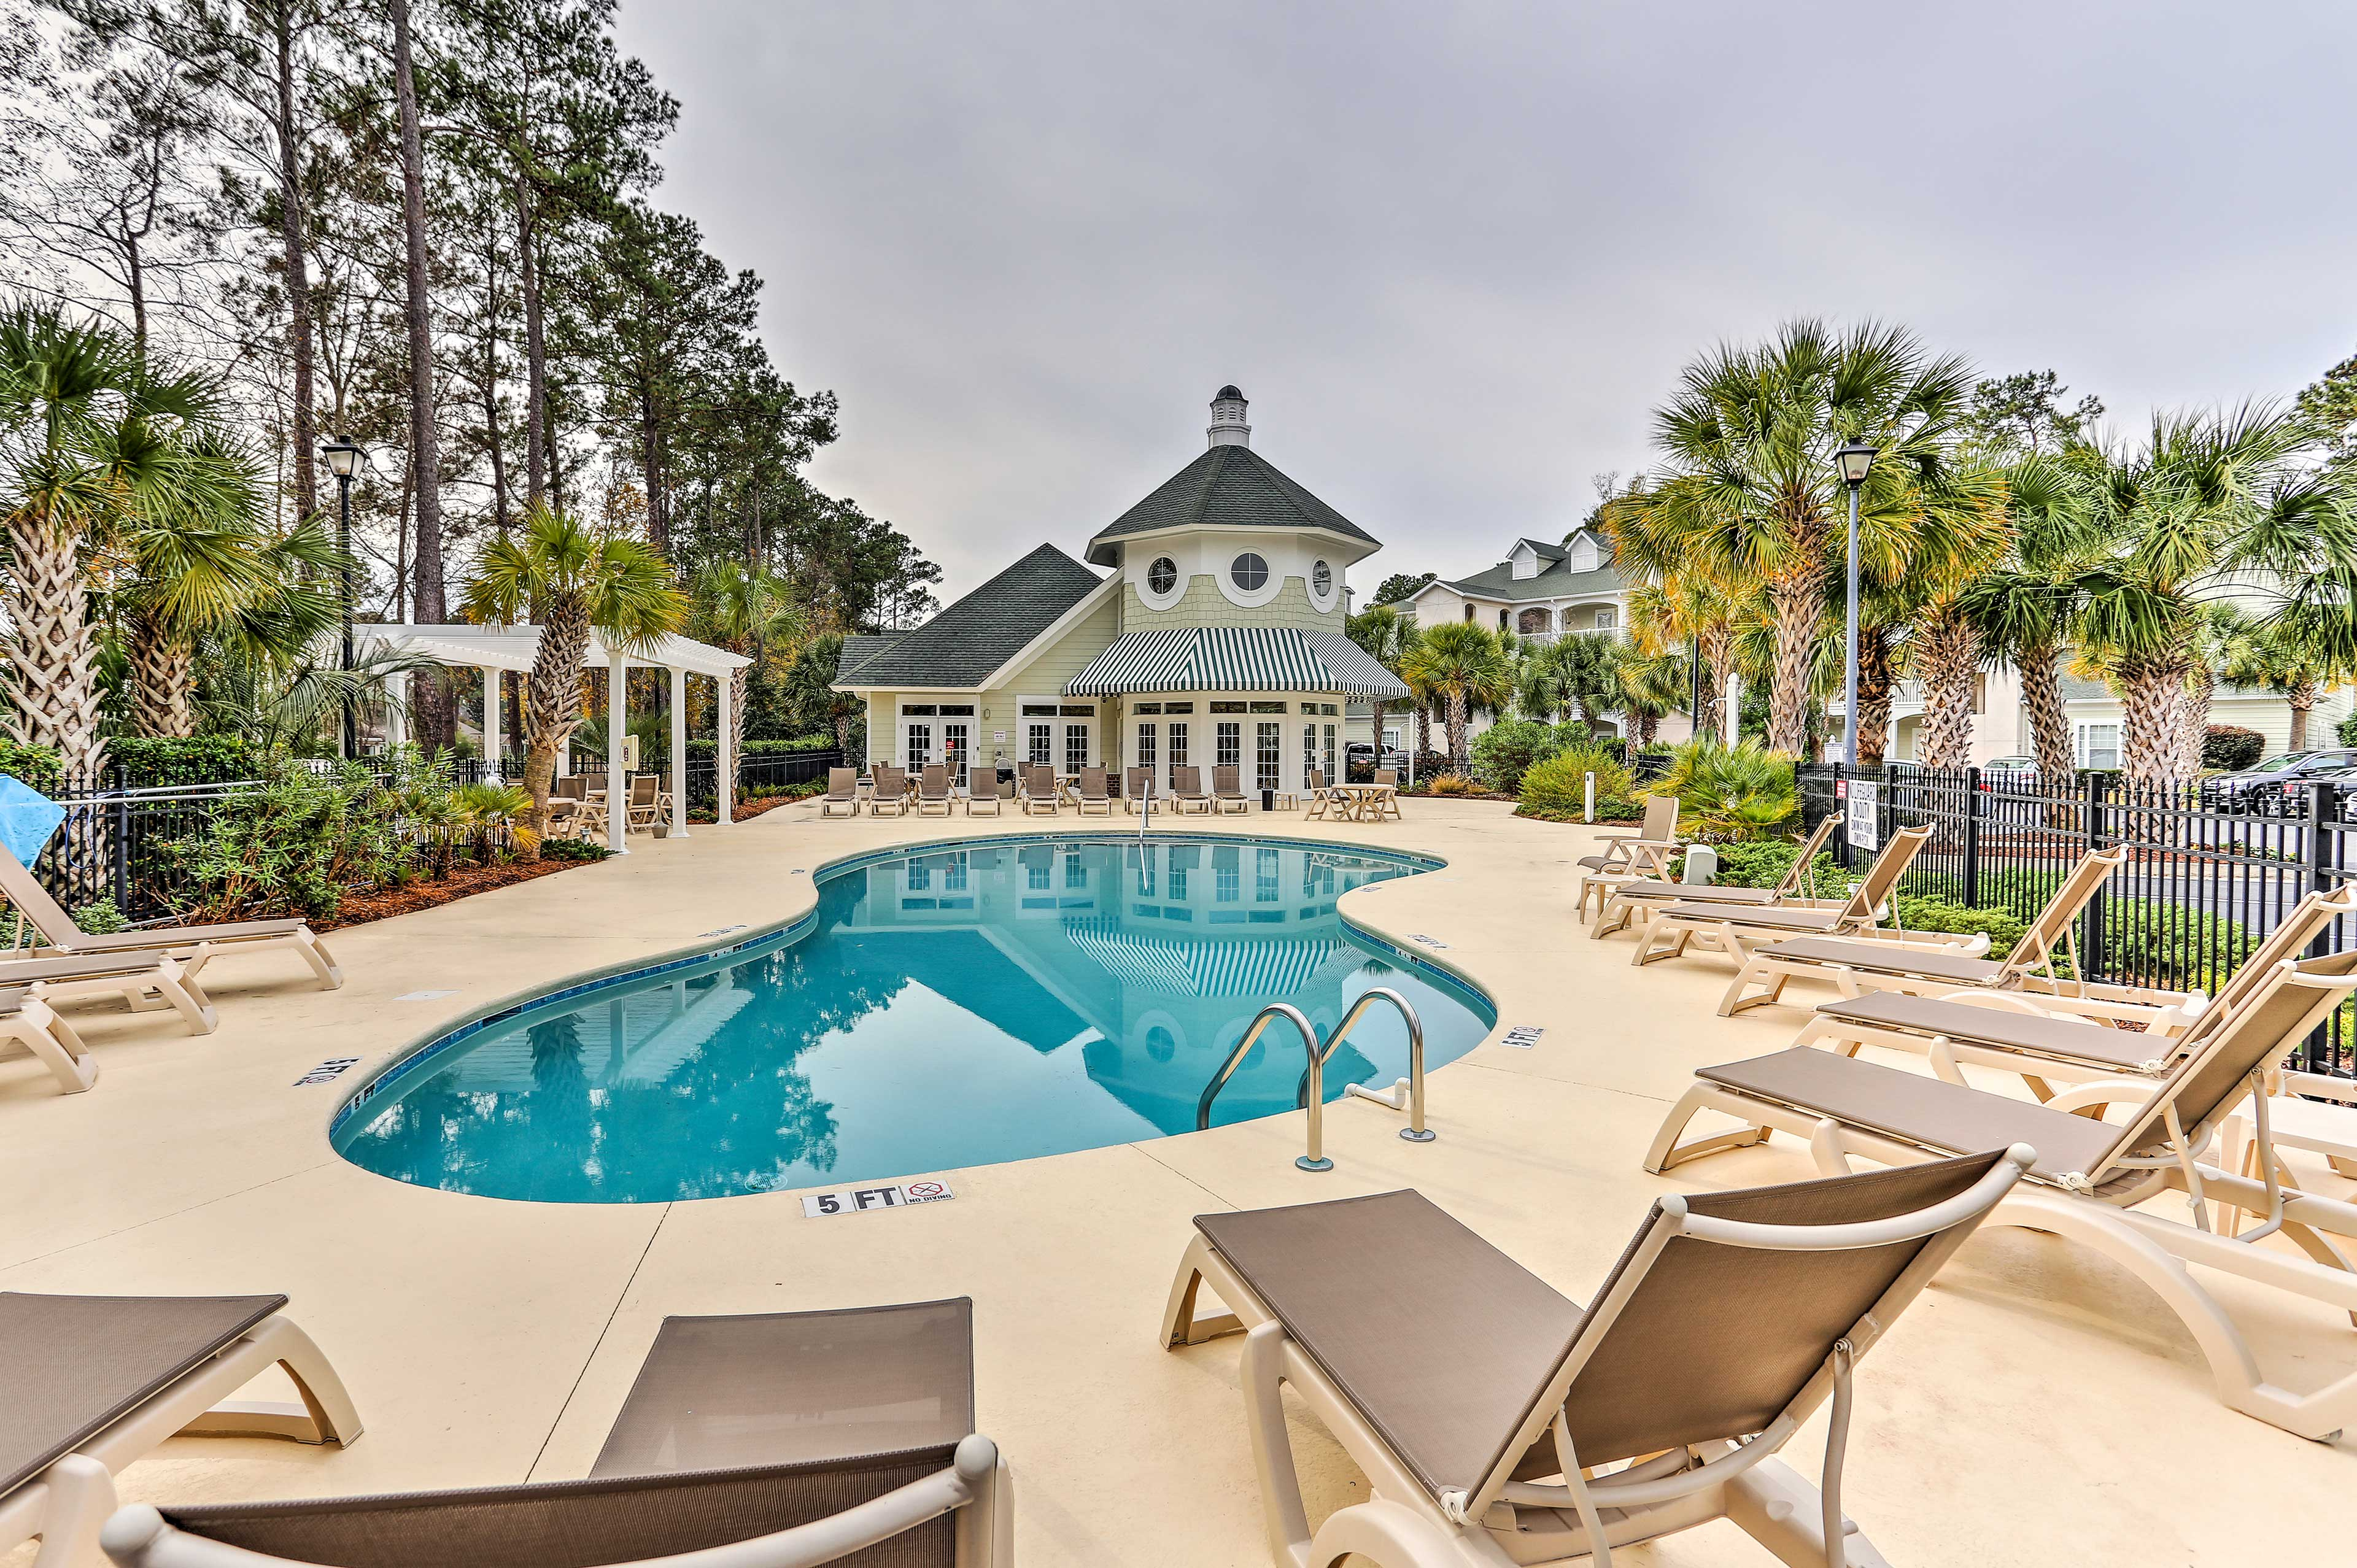 Discover your ideal Myrtle Beach destination at this upscale vacation rental condo!